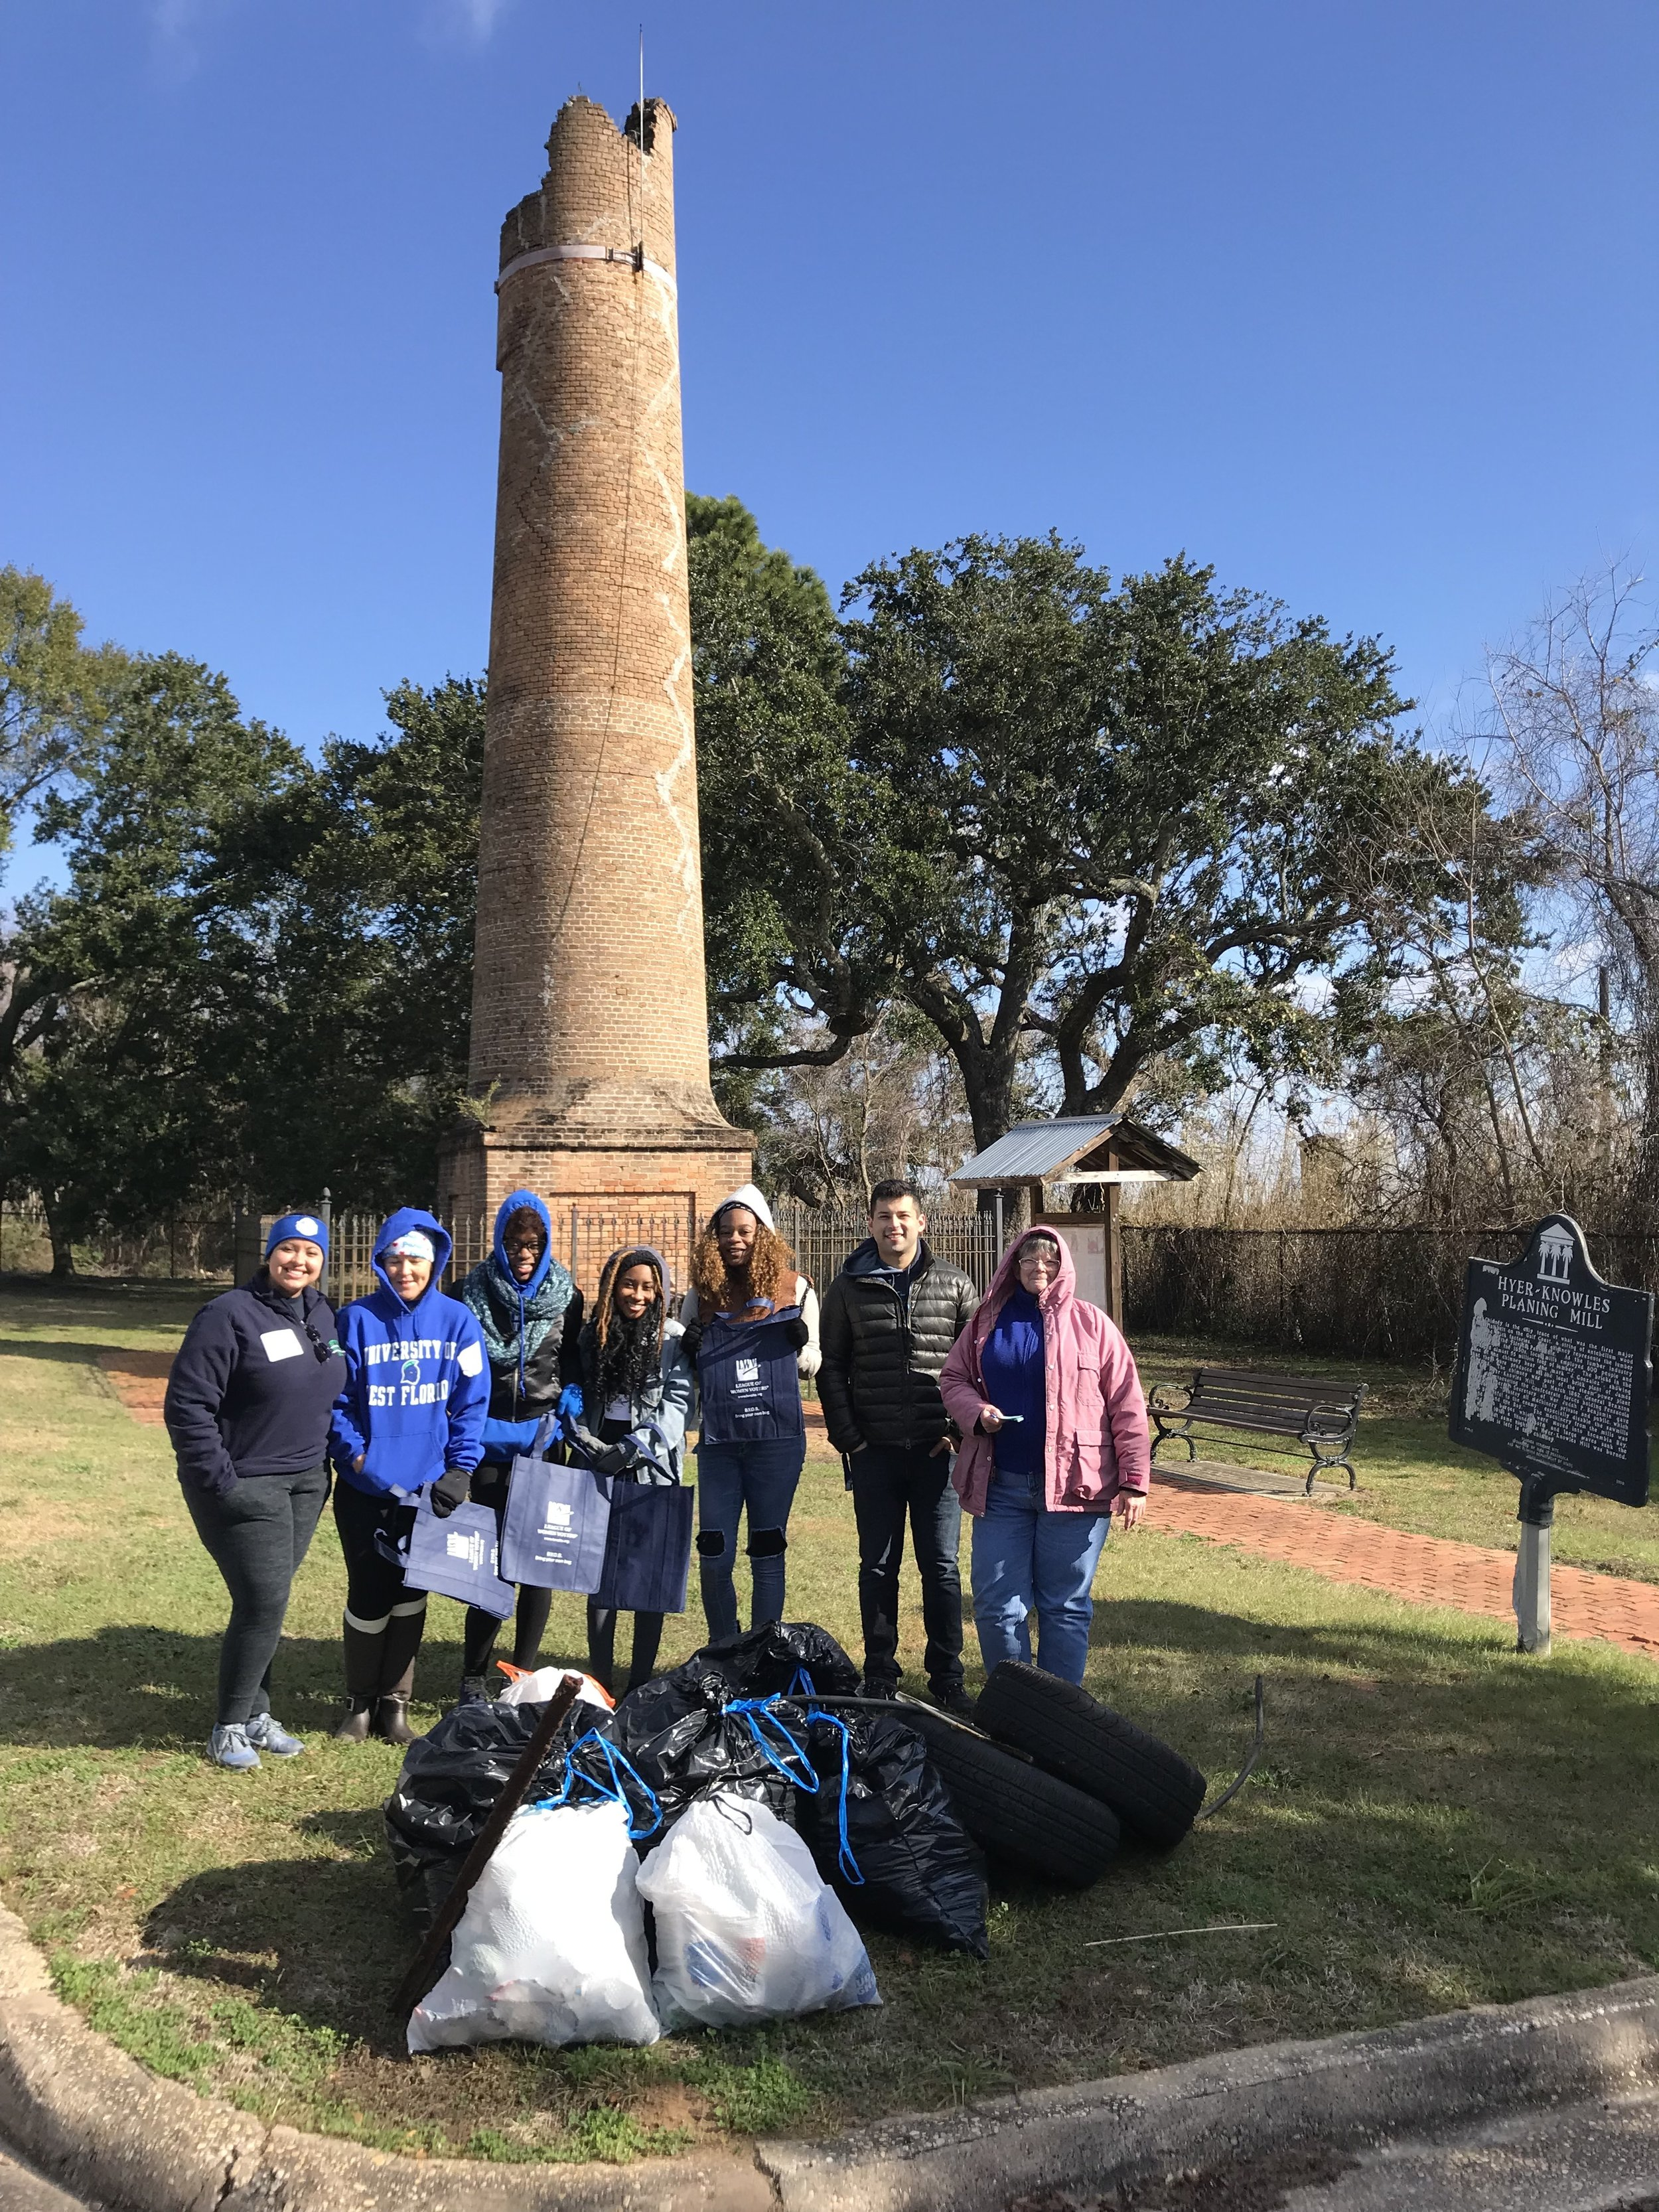 - Fourteen volunteers at Chimney Park Scenic Hwy picked up 129 lbs of trash. Thanks to U. of West Florida 6 students. League of Women Voters provided recyclable tote bags to the volunteers. Thank youA further 150 lbs was picked up by twenty volunteers at Bay Bluffs Park.Pensacola News Journal article on today's cleanup click here